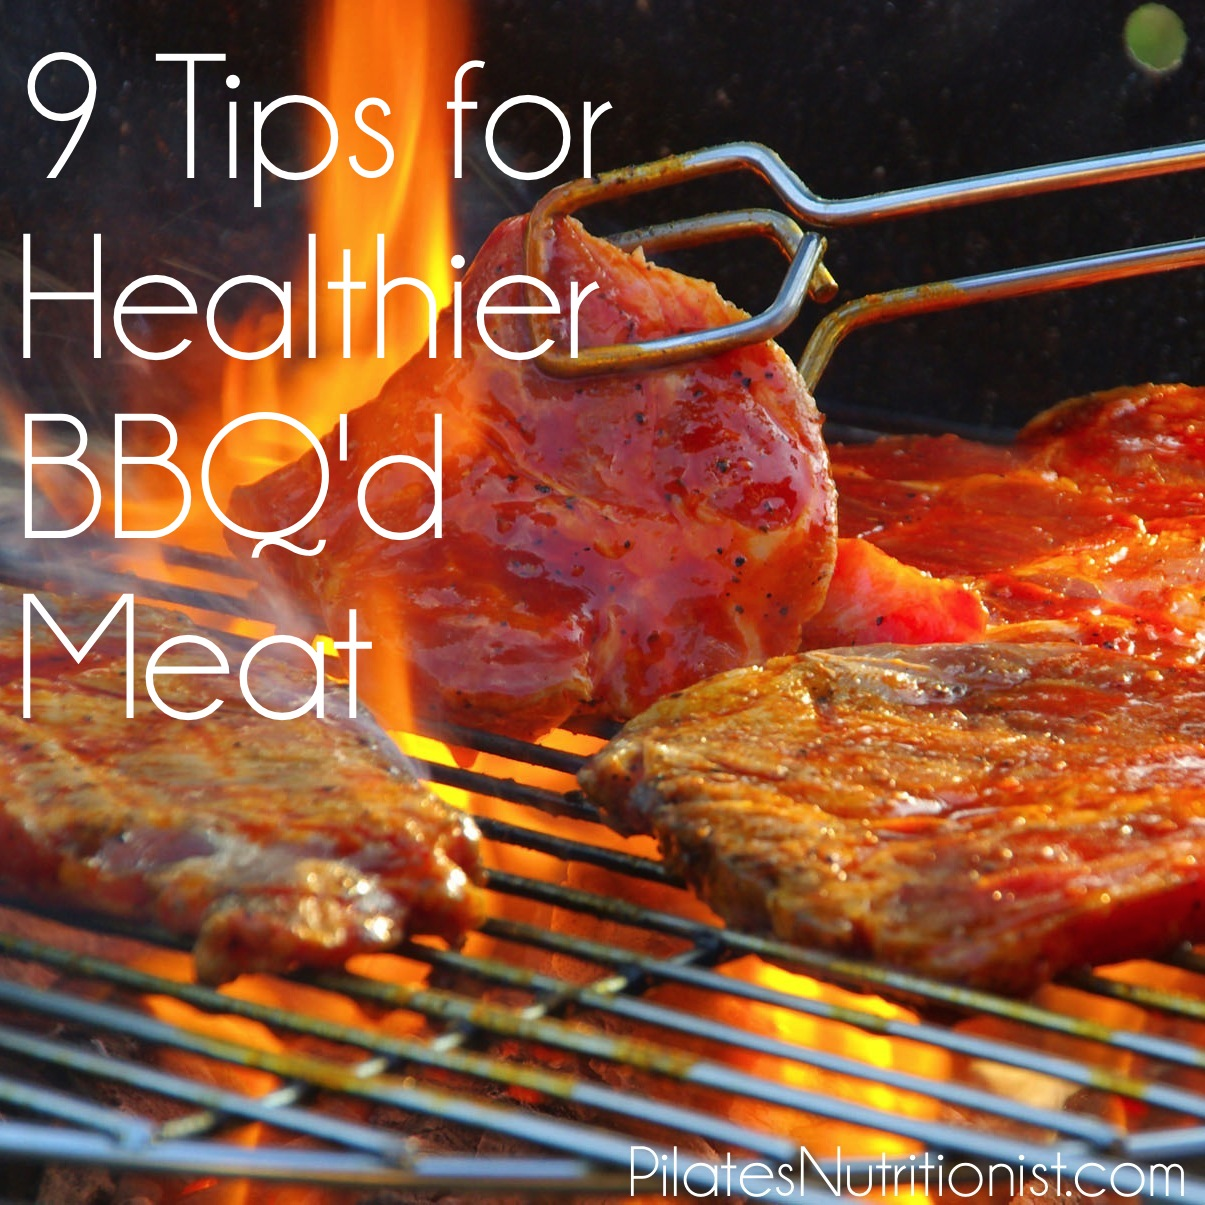 9 tips for healthier bbq'd meat